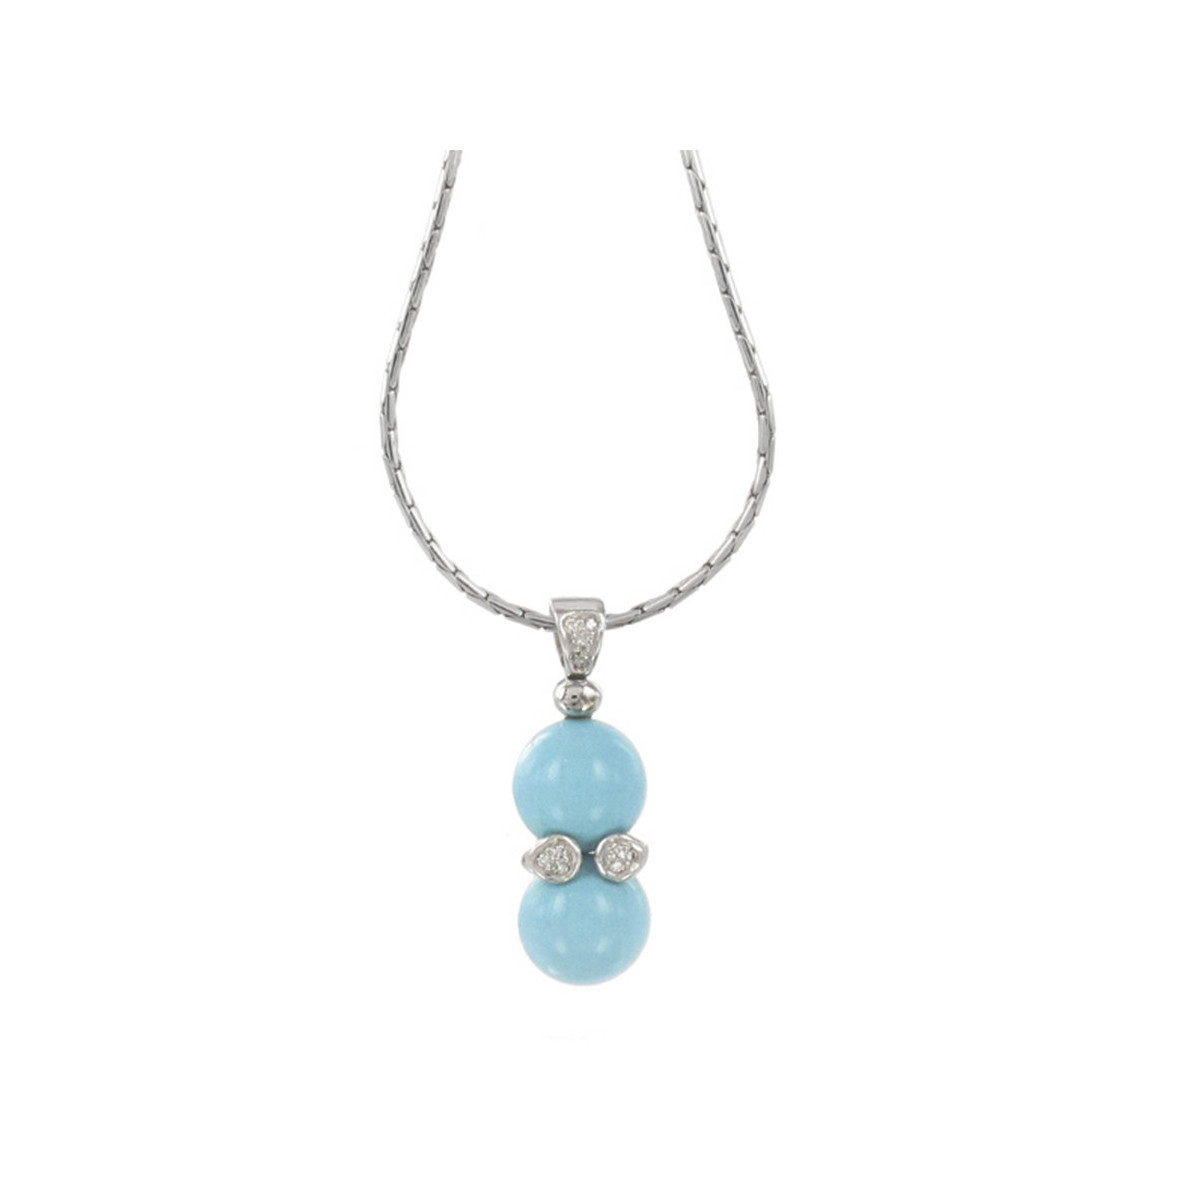 TURQUOISE PENDANT GOLD AND DIAMONDS